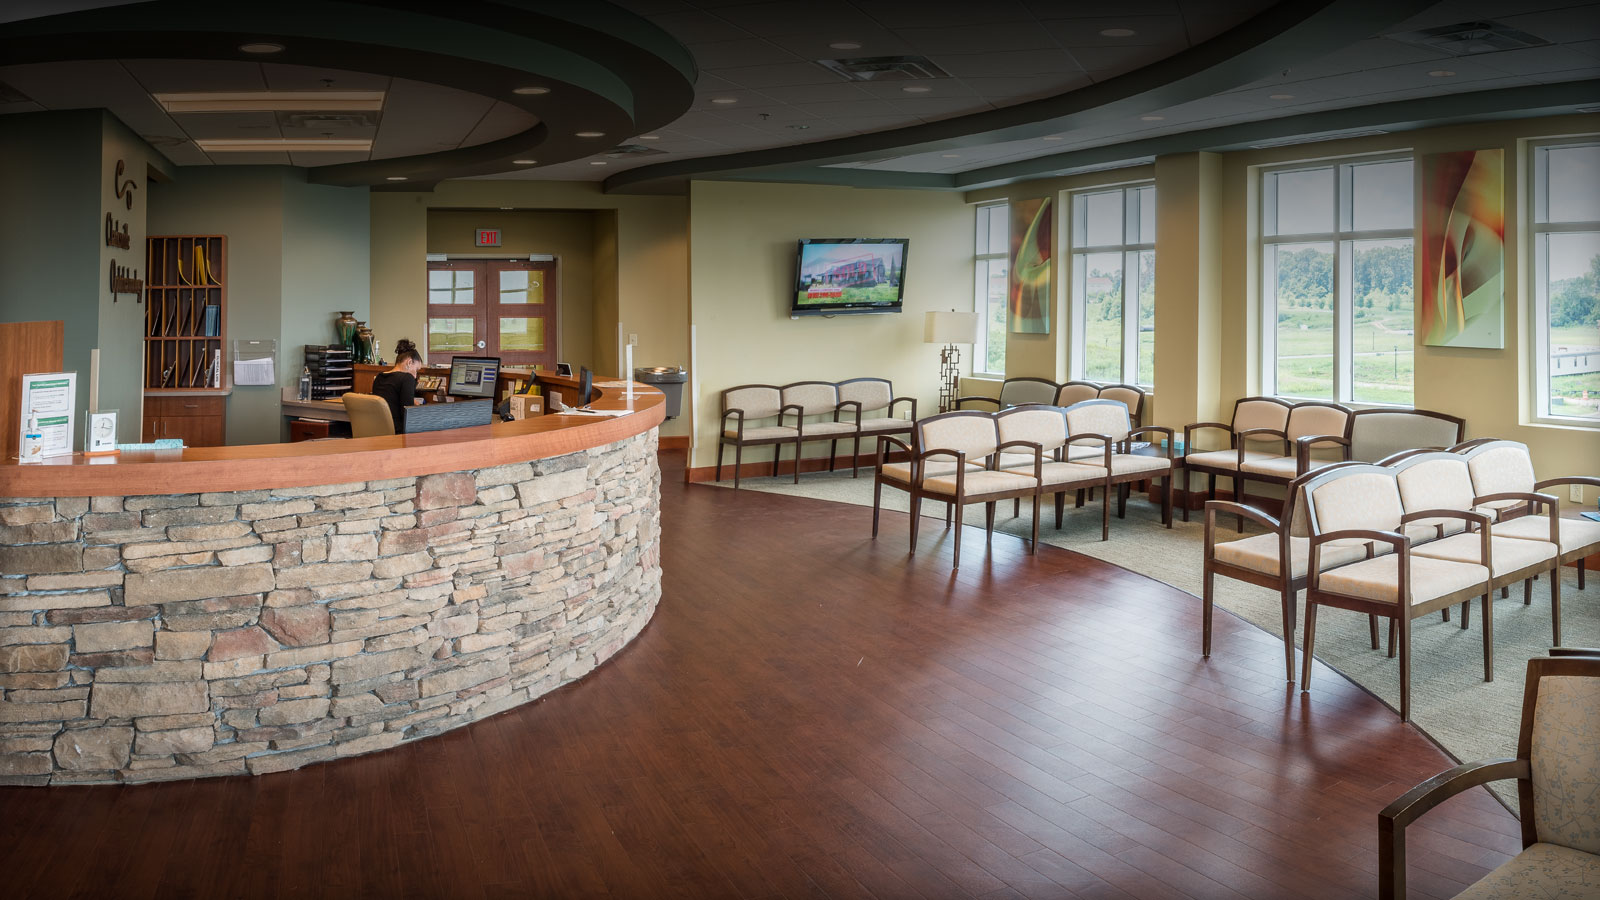 Patient Wating Room at Chesapeake Center Medical Office with Surgery Center Building